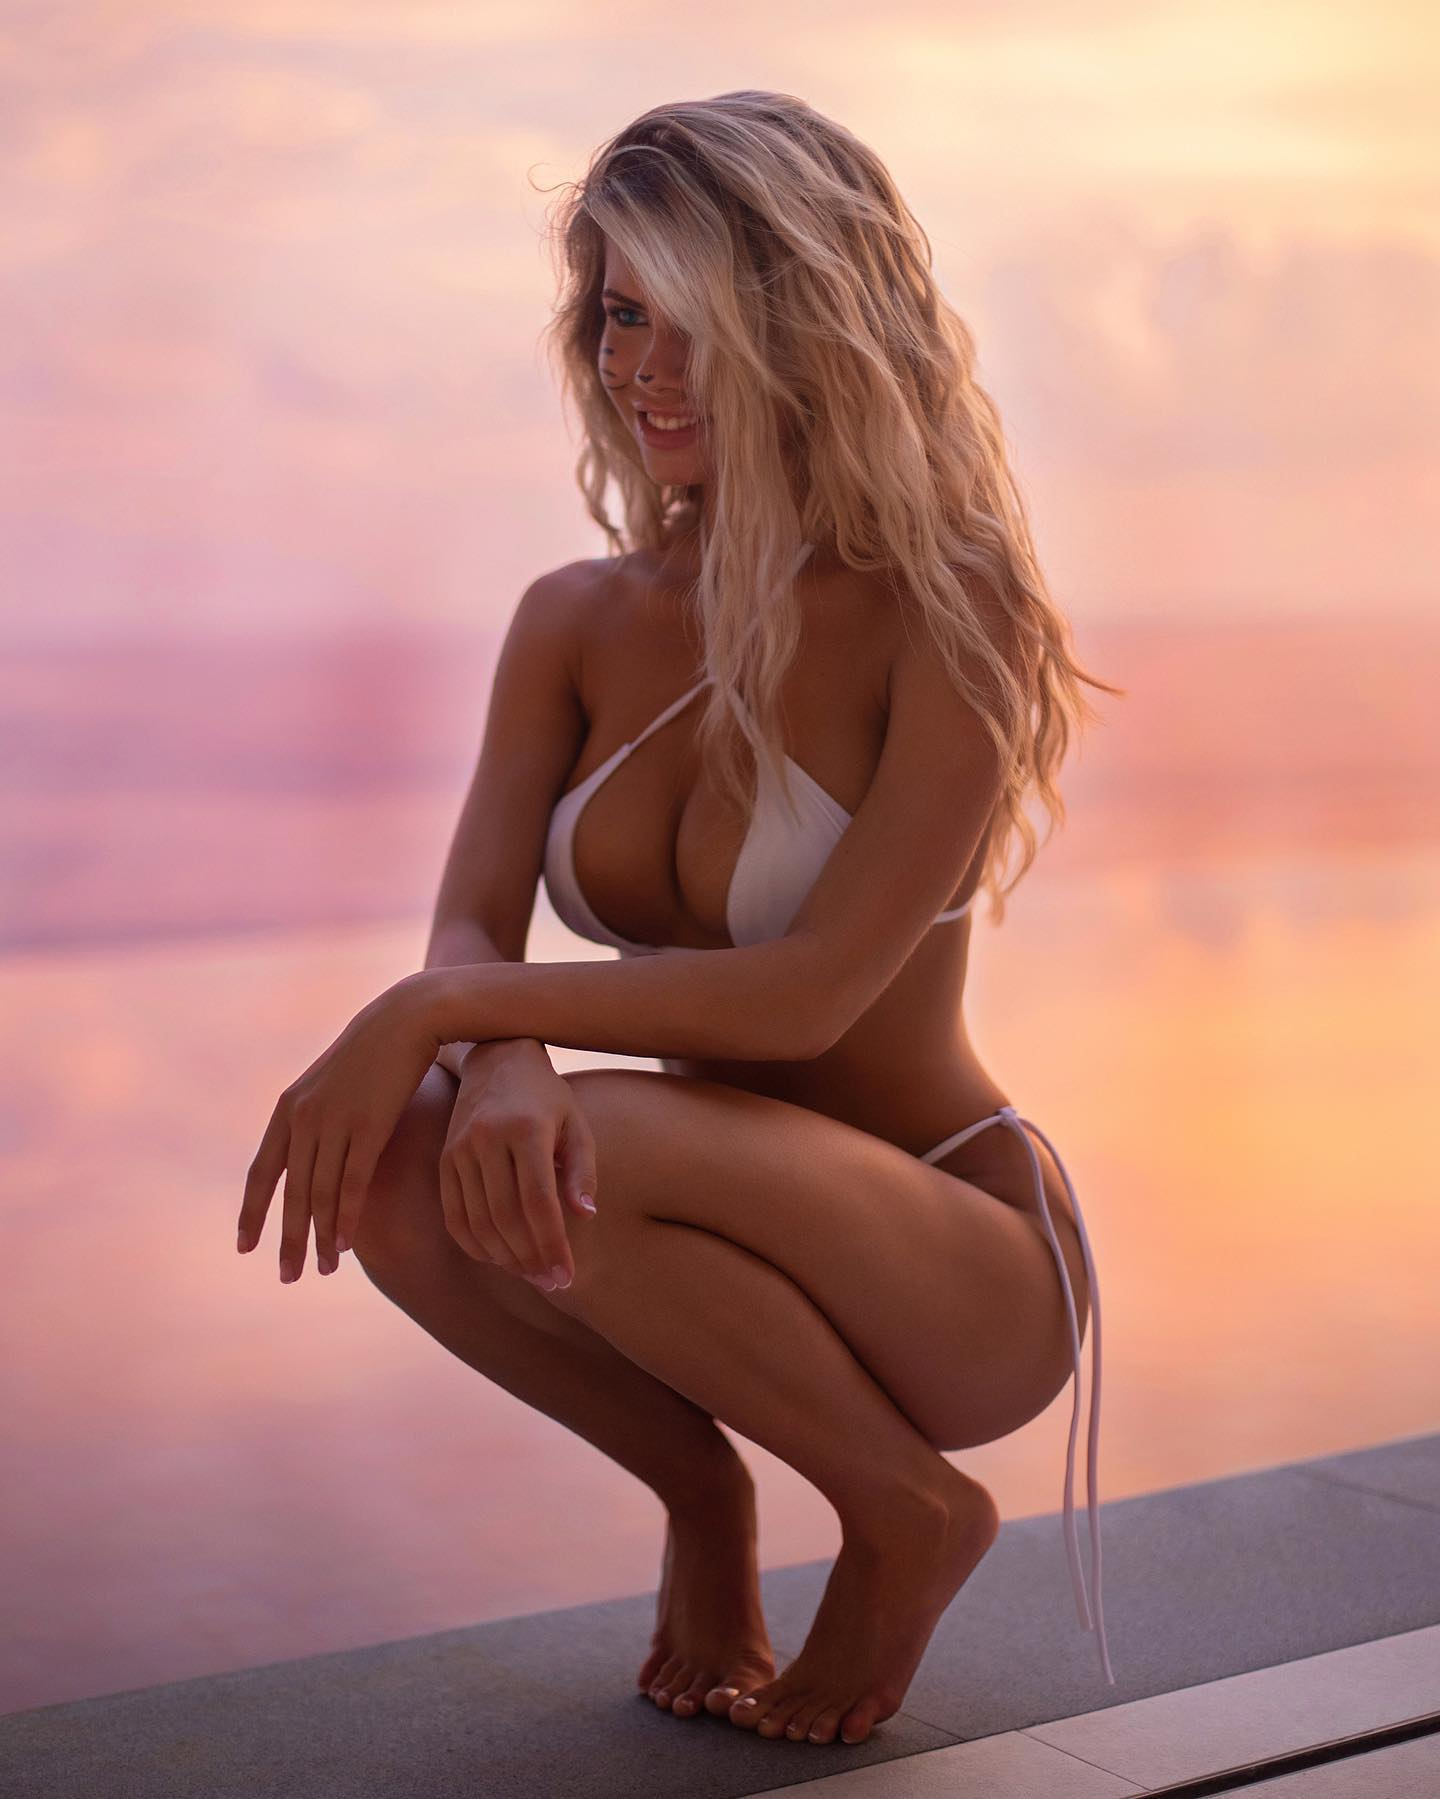 Изображение помечено: Skinny, Blonde, Busty, Nata Lee, Bikini, Cute, Smiling